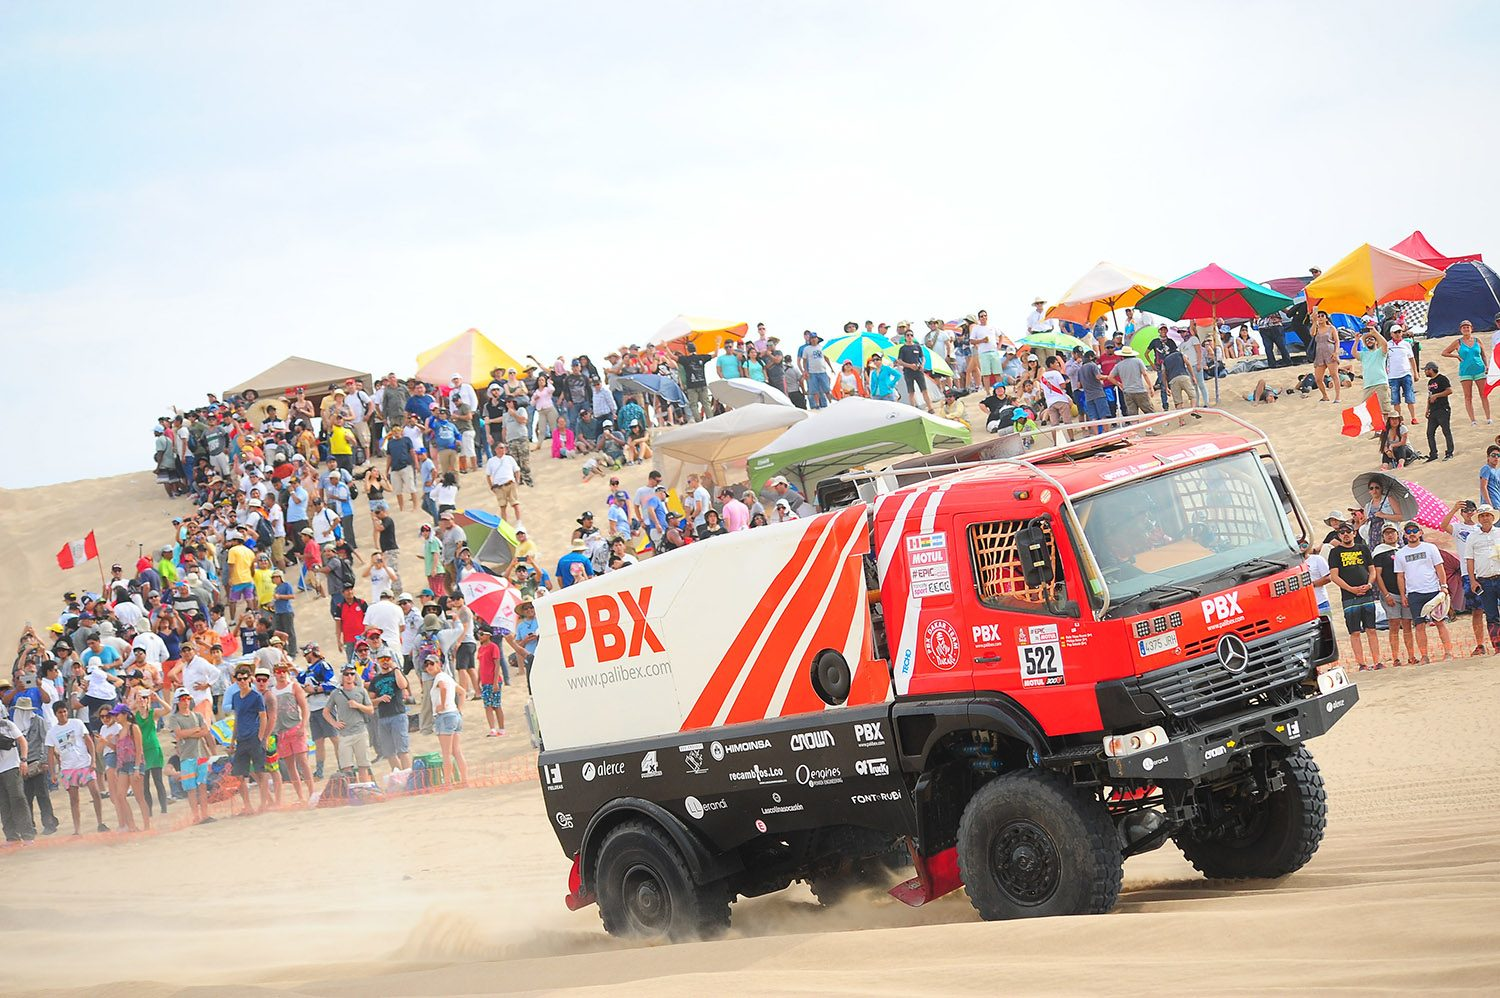 522-2018-01-06-PBX DAKAR 2018 TEAM (6)